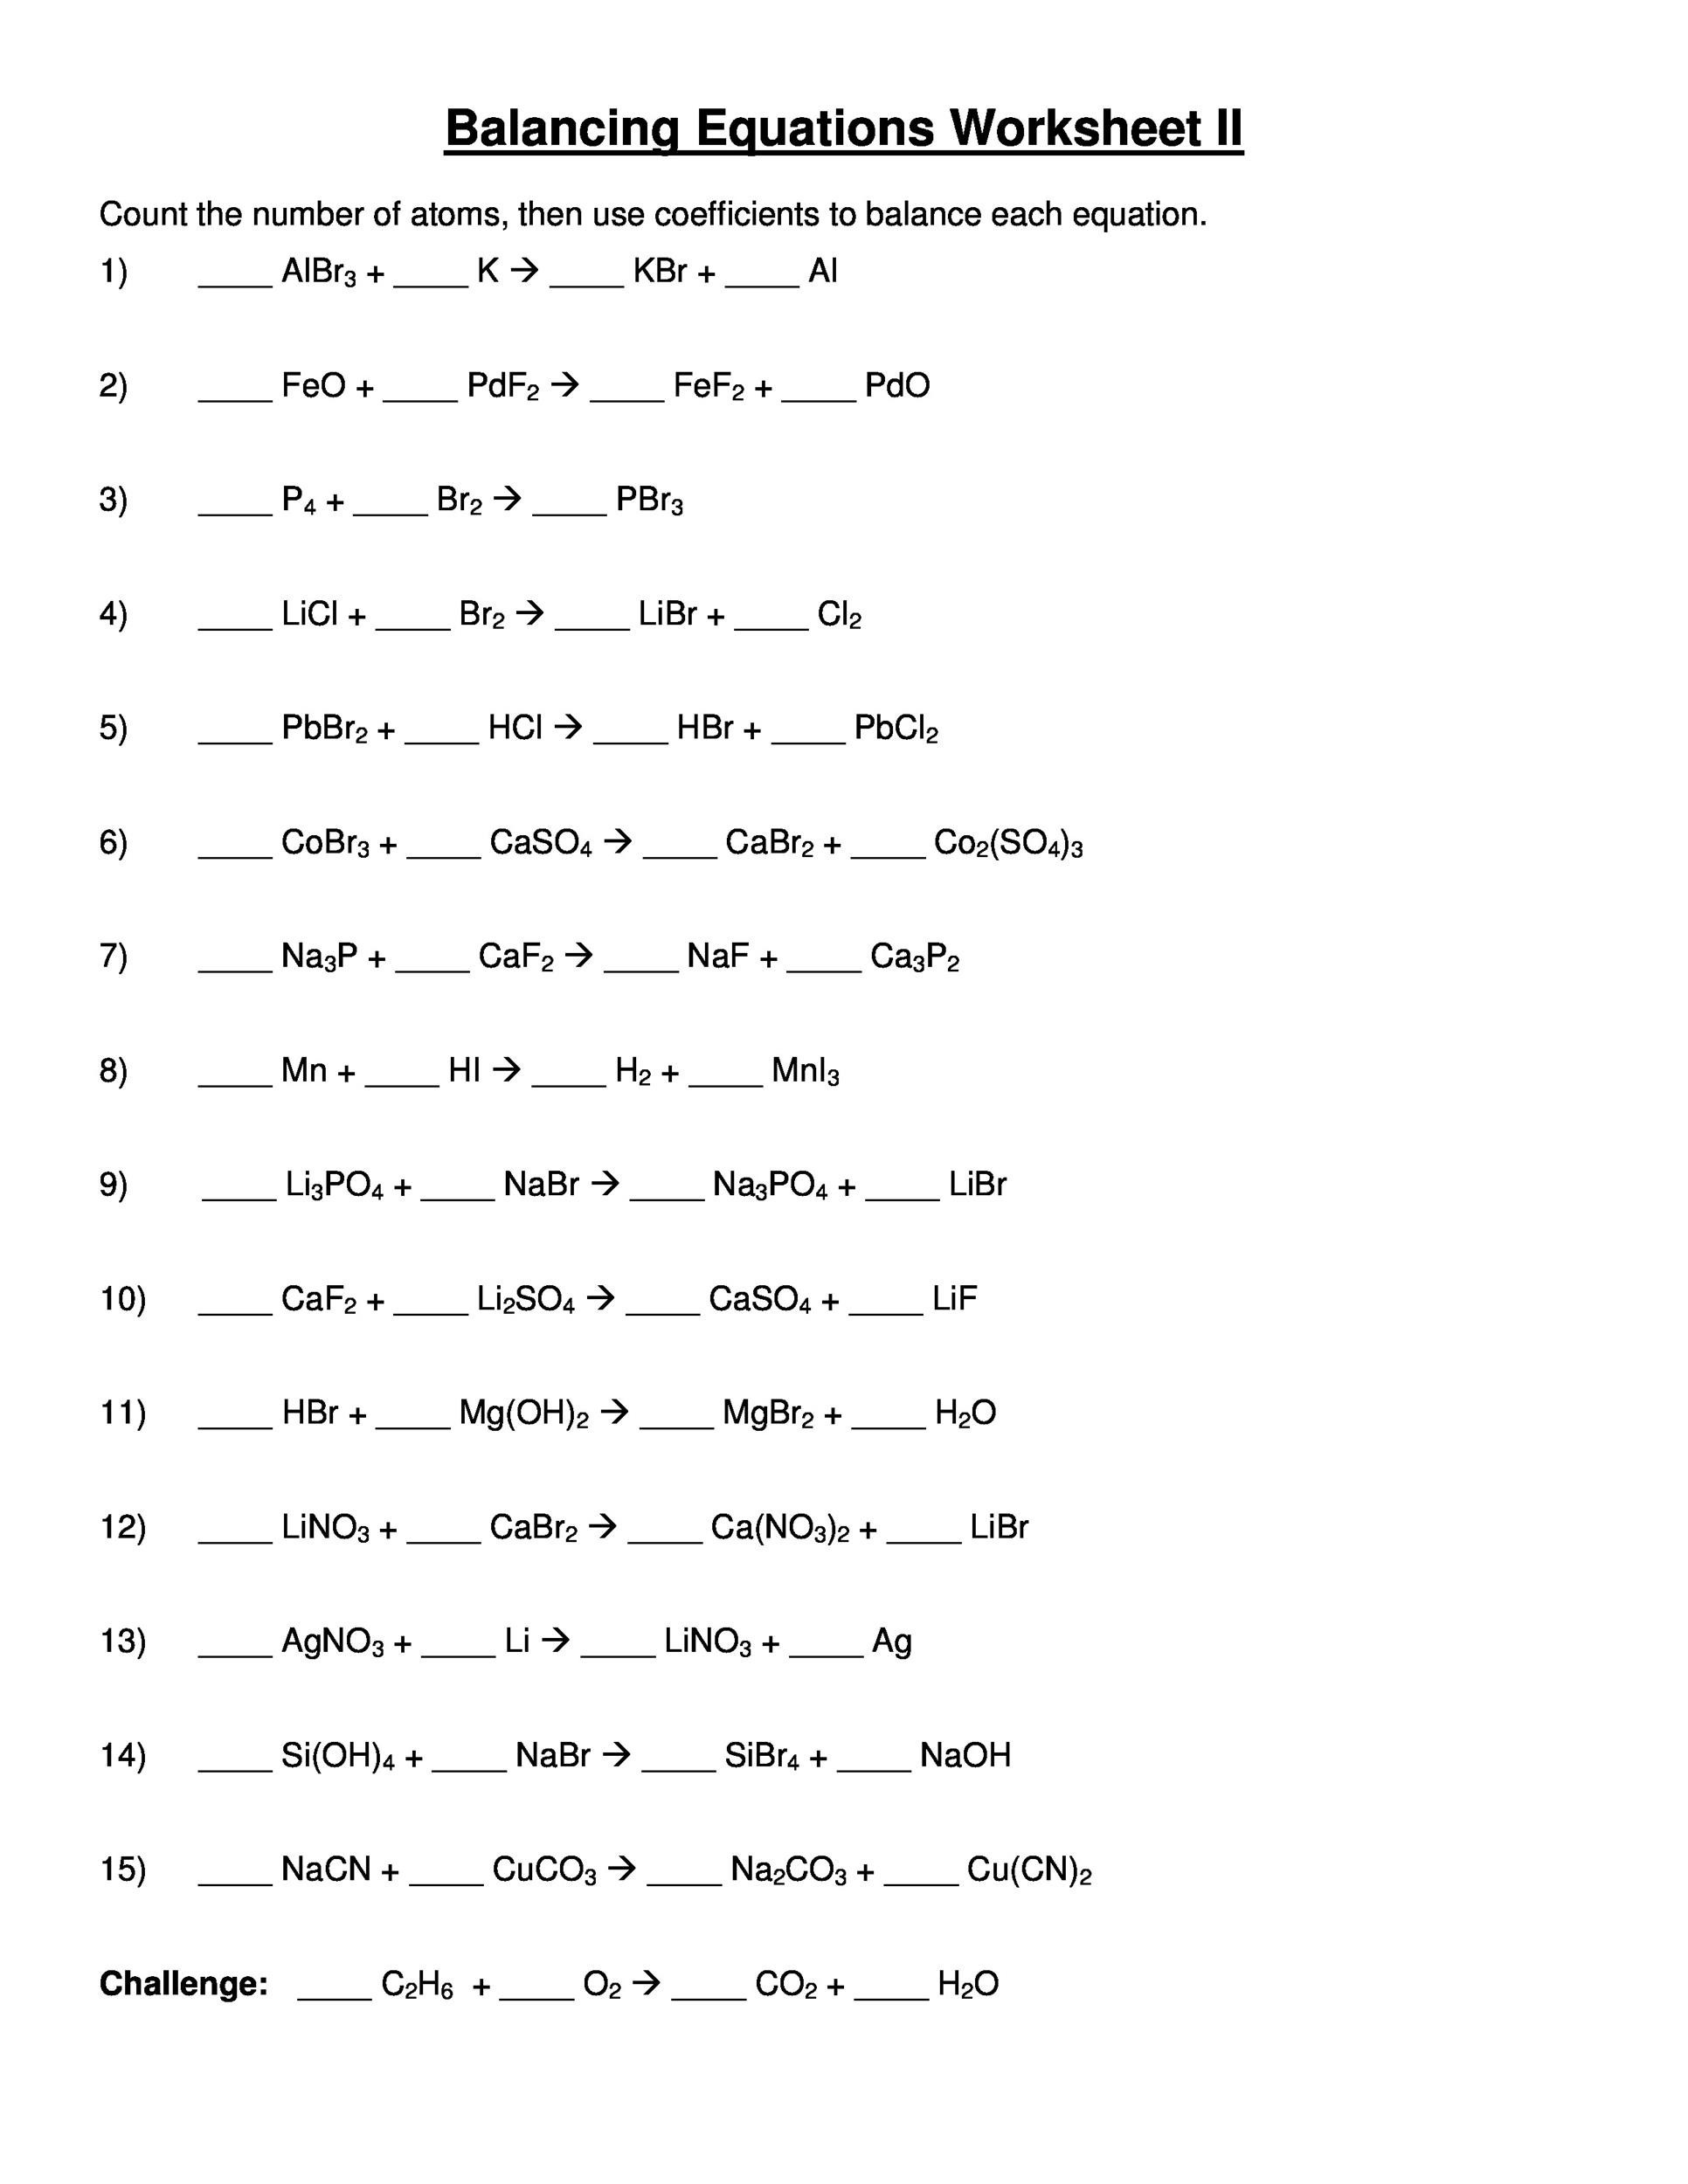 Worksheets Equations Worksheet 7th grade equations worksheets switchconf